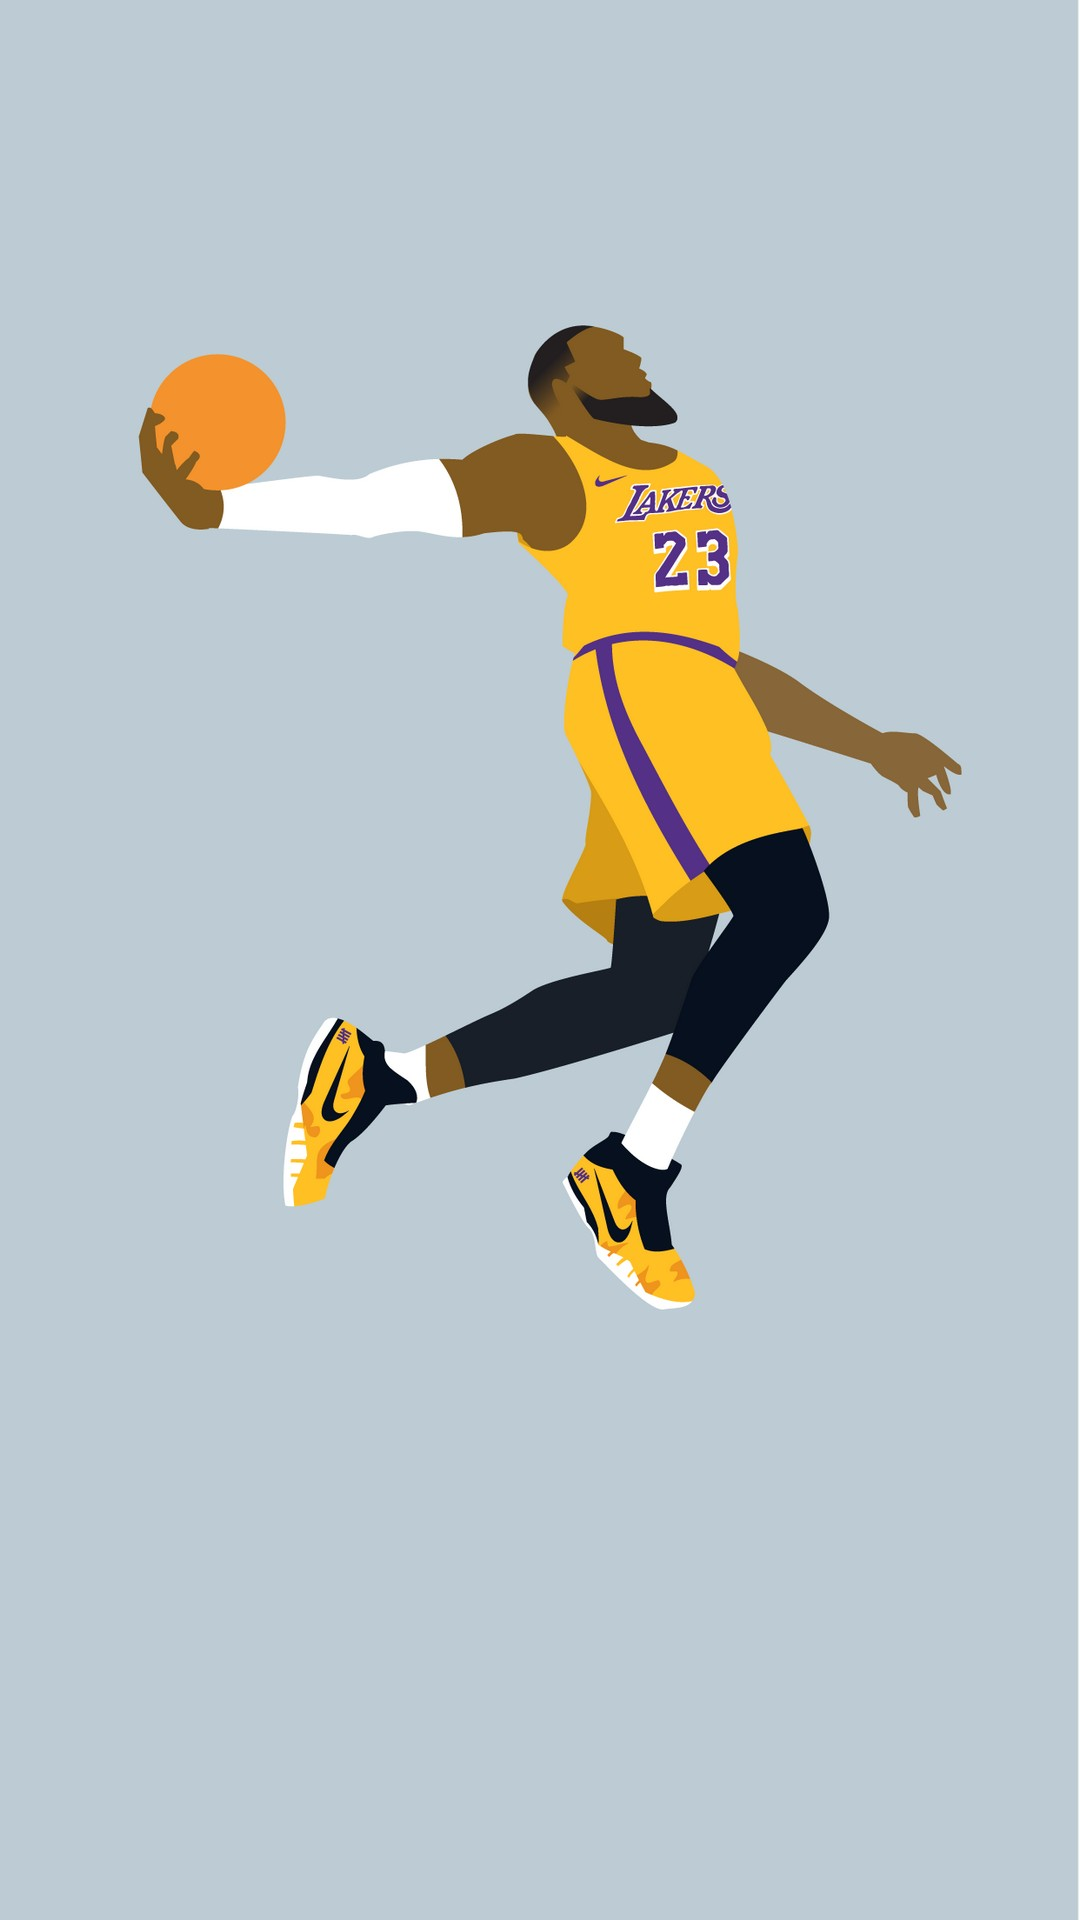 Free Download Iphone Wallpaper Hd Lebron James La Lakers 2020 Basketball Wallpaper 1080x1920 For Your Desktop Mobile Tablet Explore 57 Iphone Player 2020 Wallpapers Iphone Player 2020 Wallpapers 2020 Iphone Wallpapers Player Background